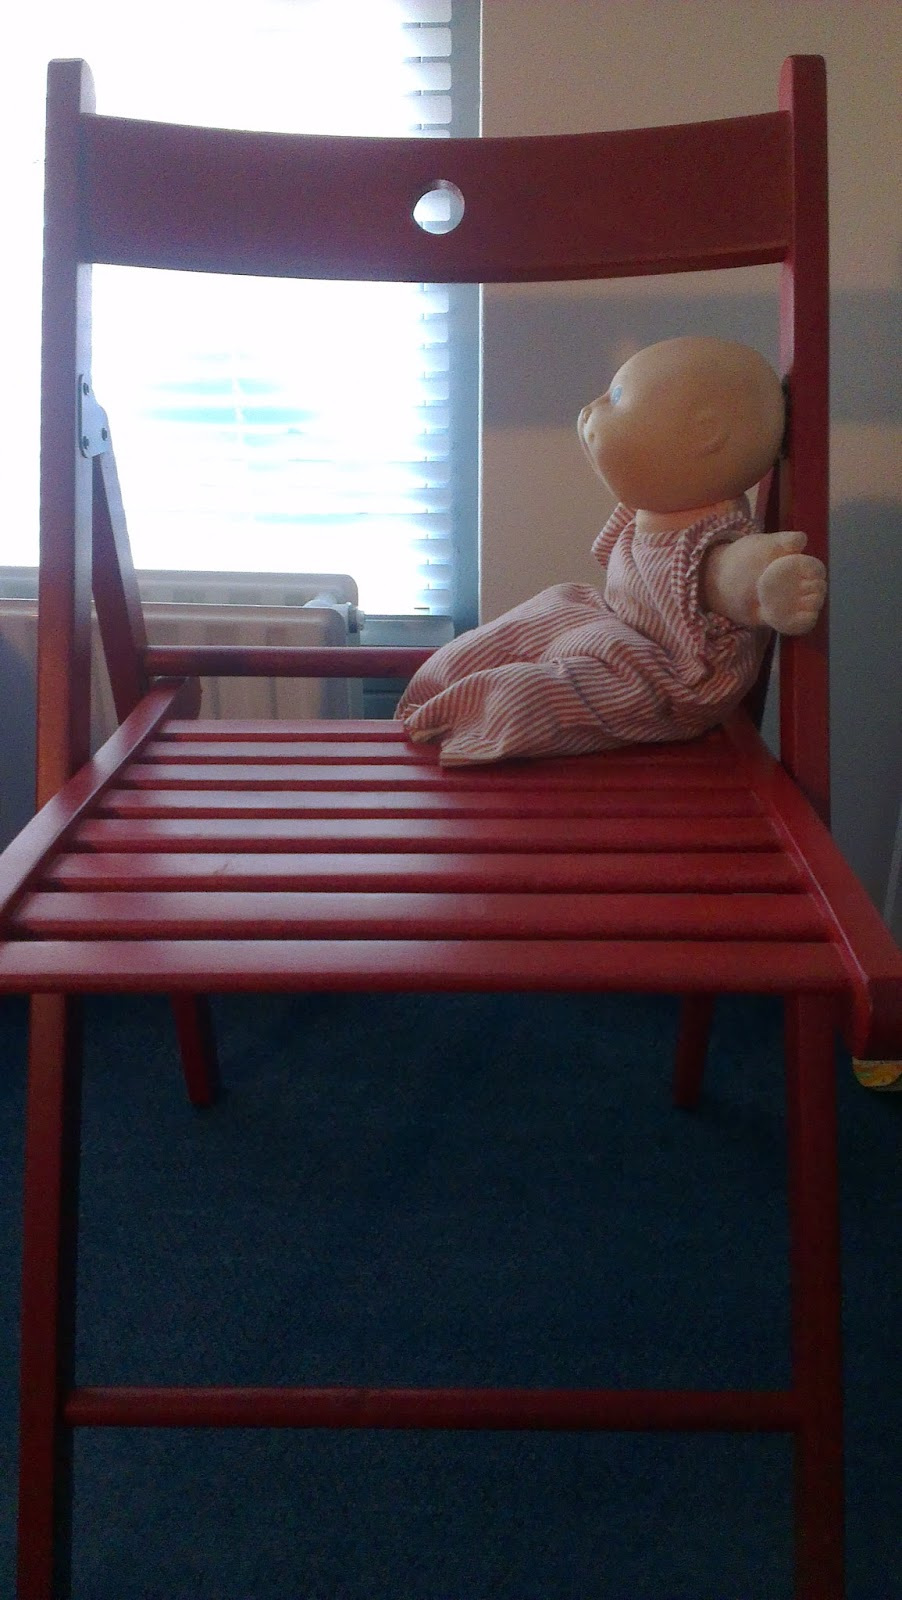 it would be easy for a toddler to slip right off no dolls were harmed during this